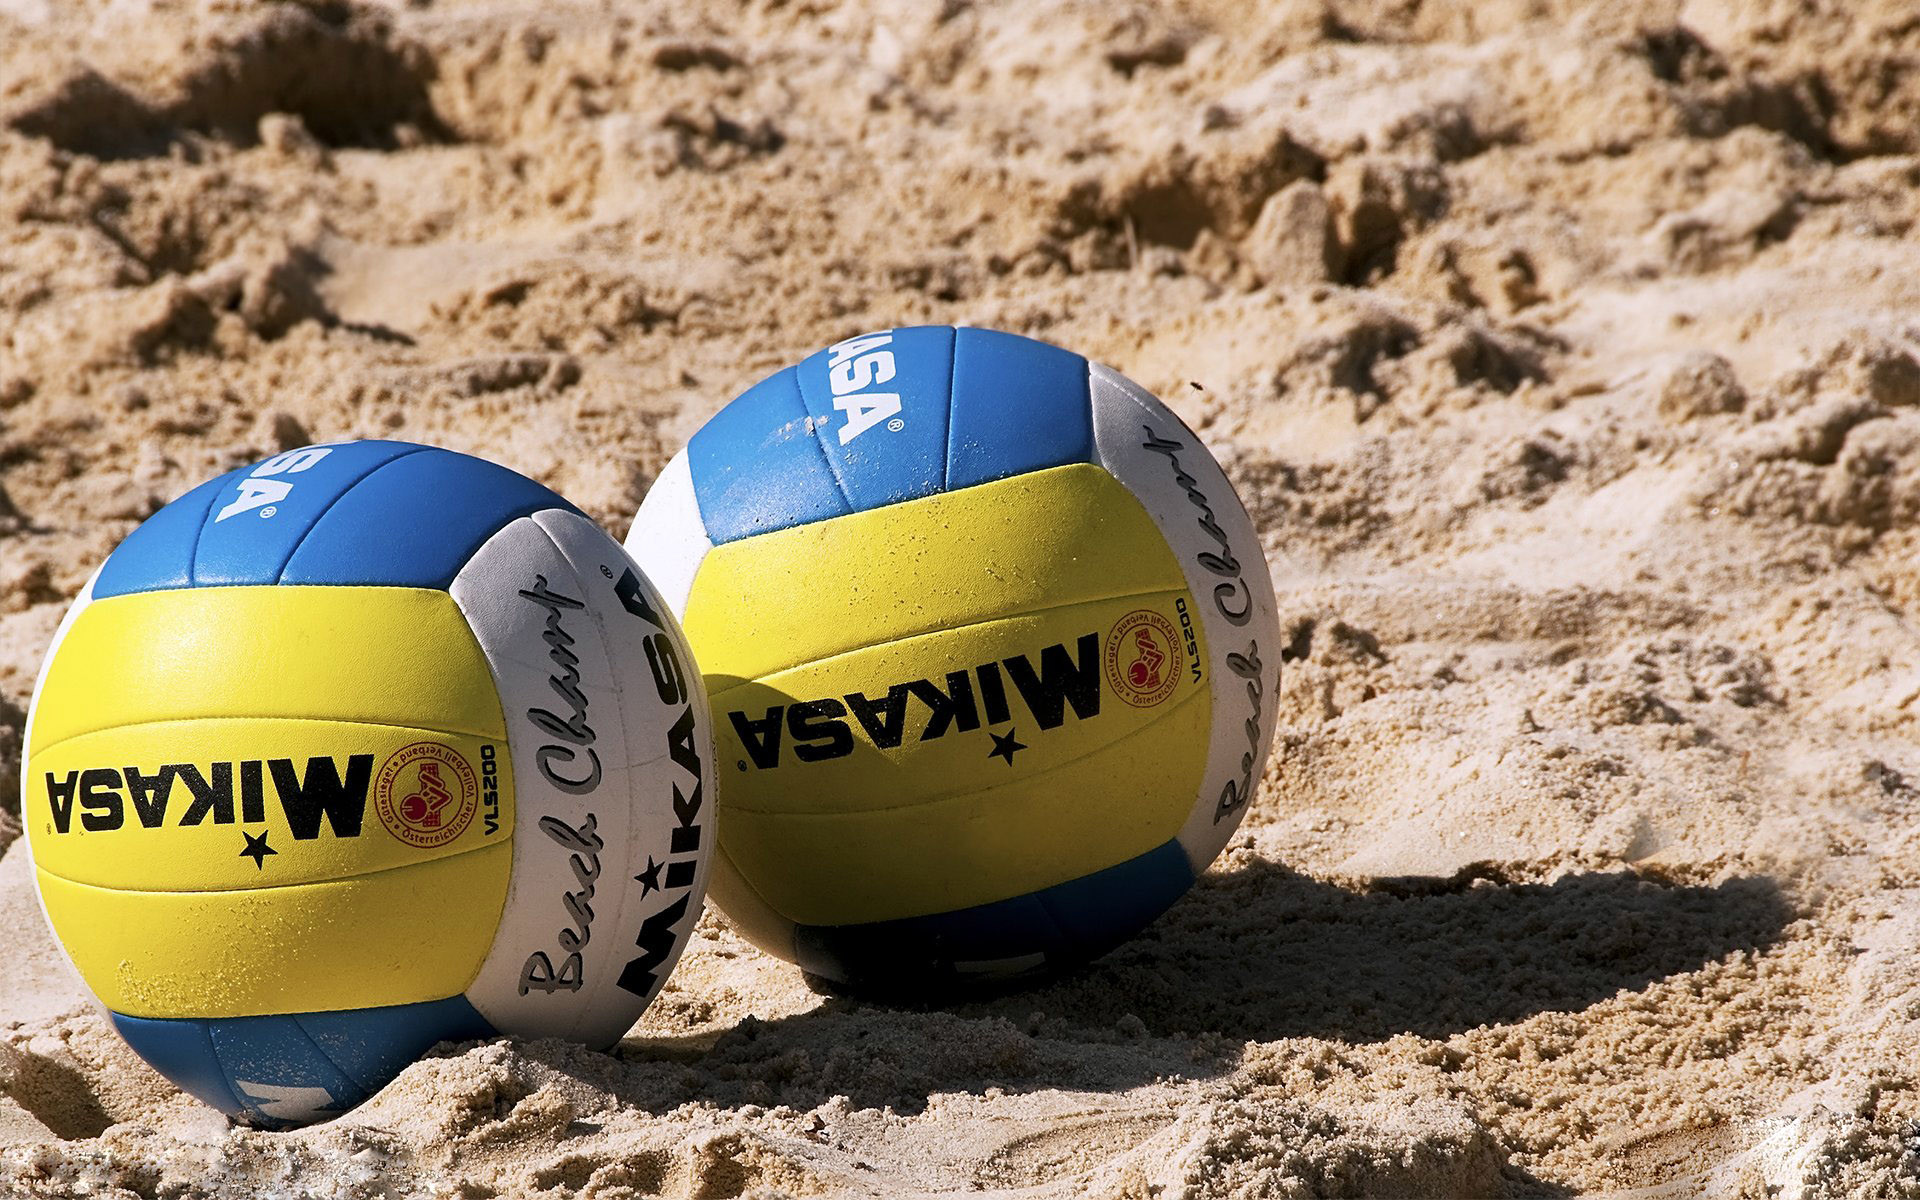 Volleyball Wallpapers: Volleyball Wallpapers And Backgrounds (59+ Images